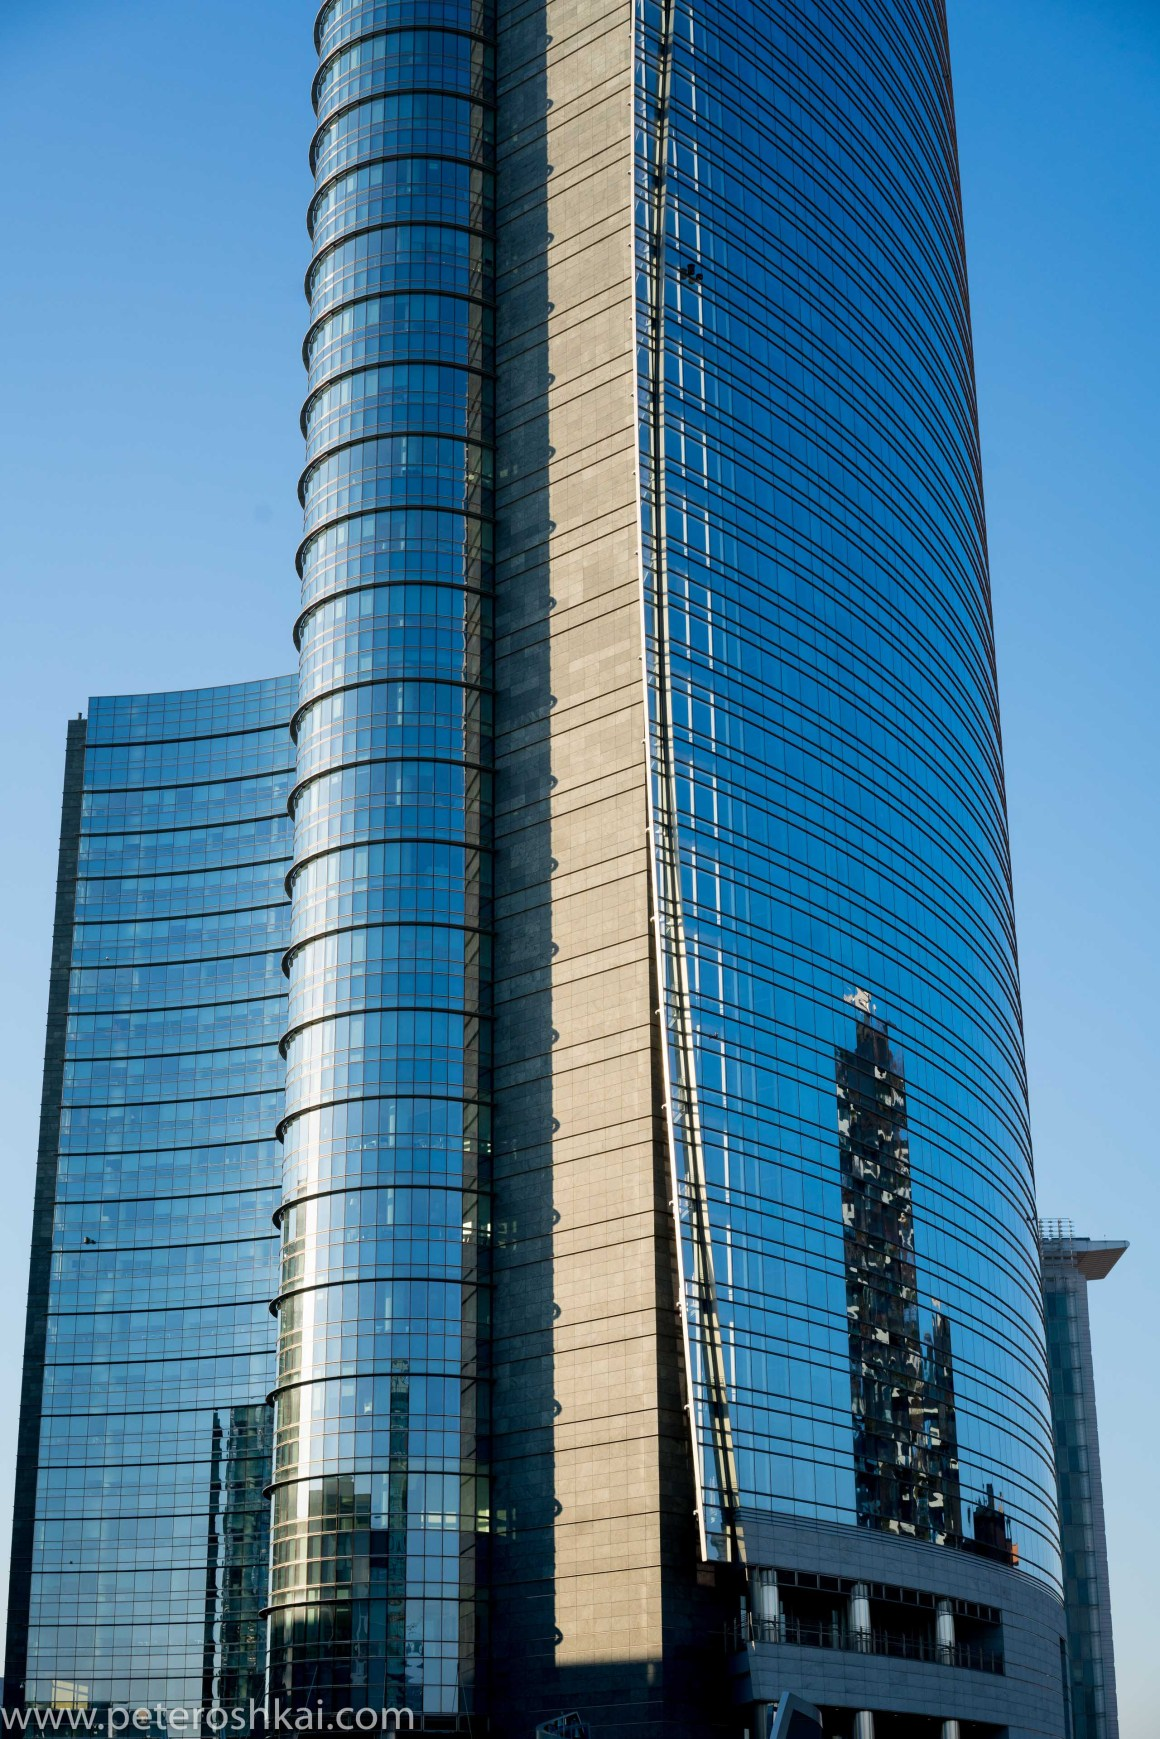 UniCredit Tower in Piazza Gae Aulenti. Milan. Italy.